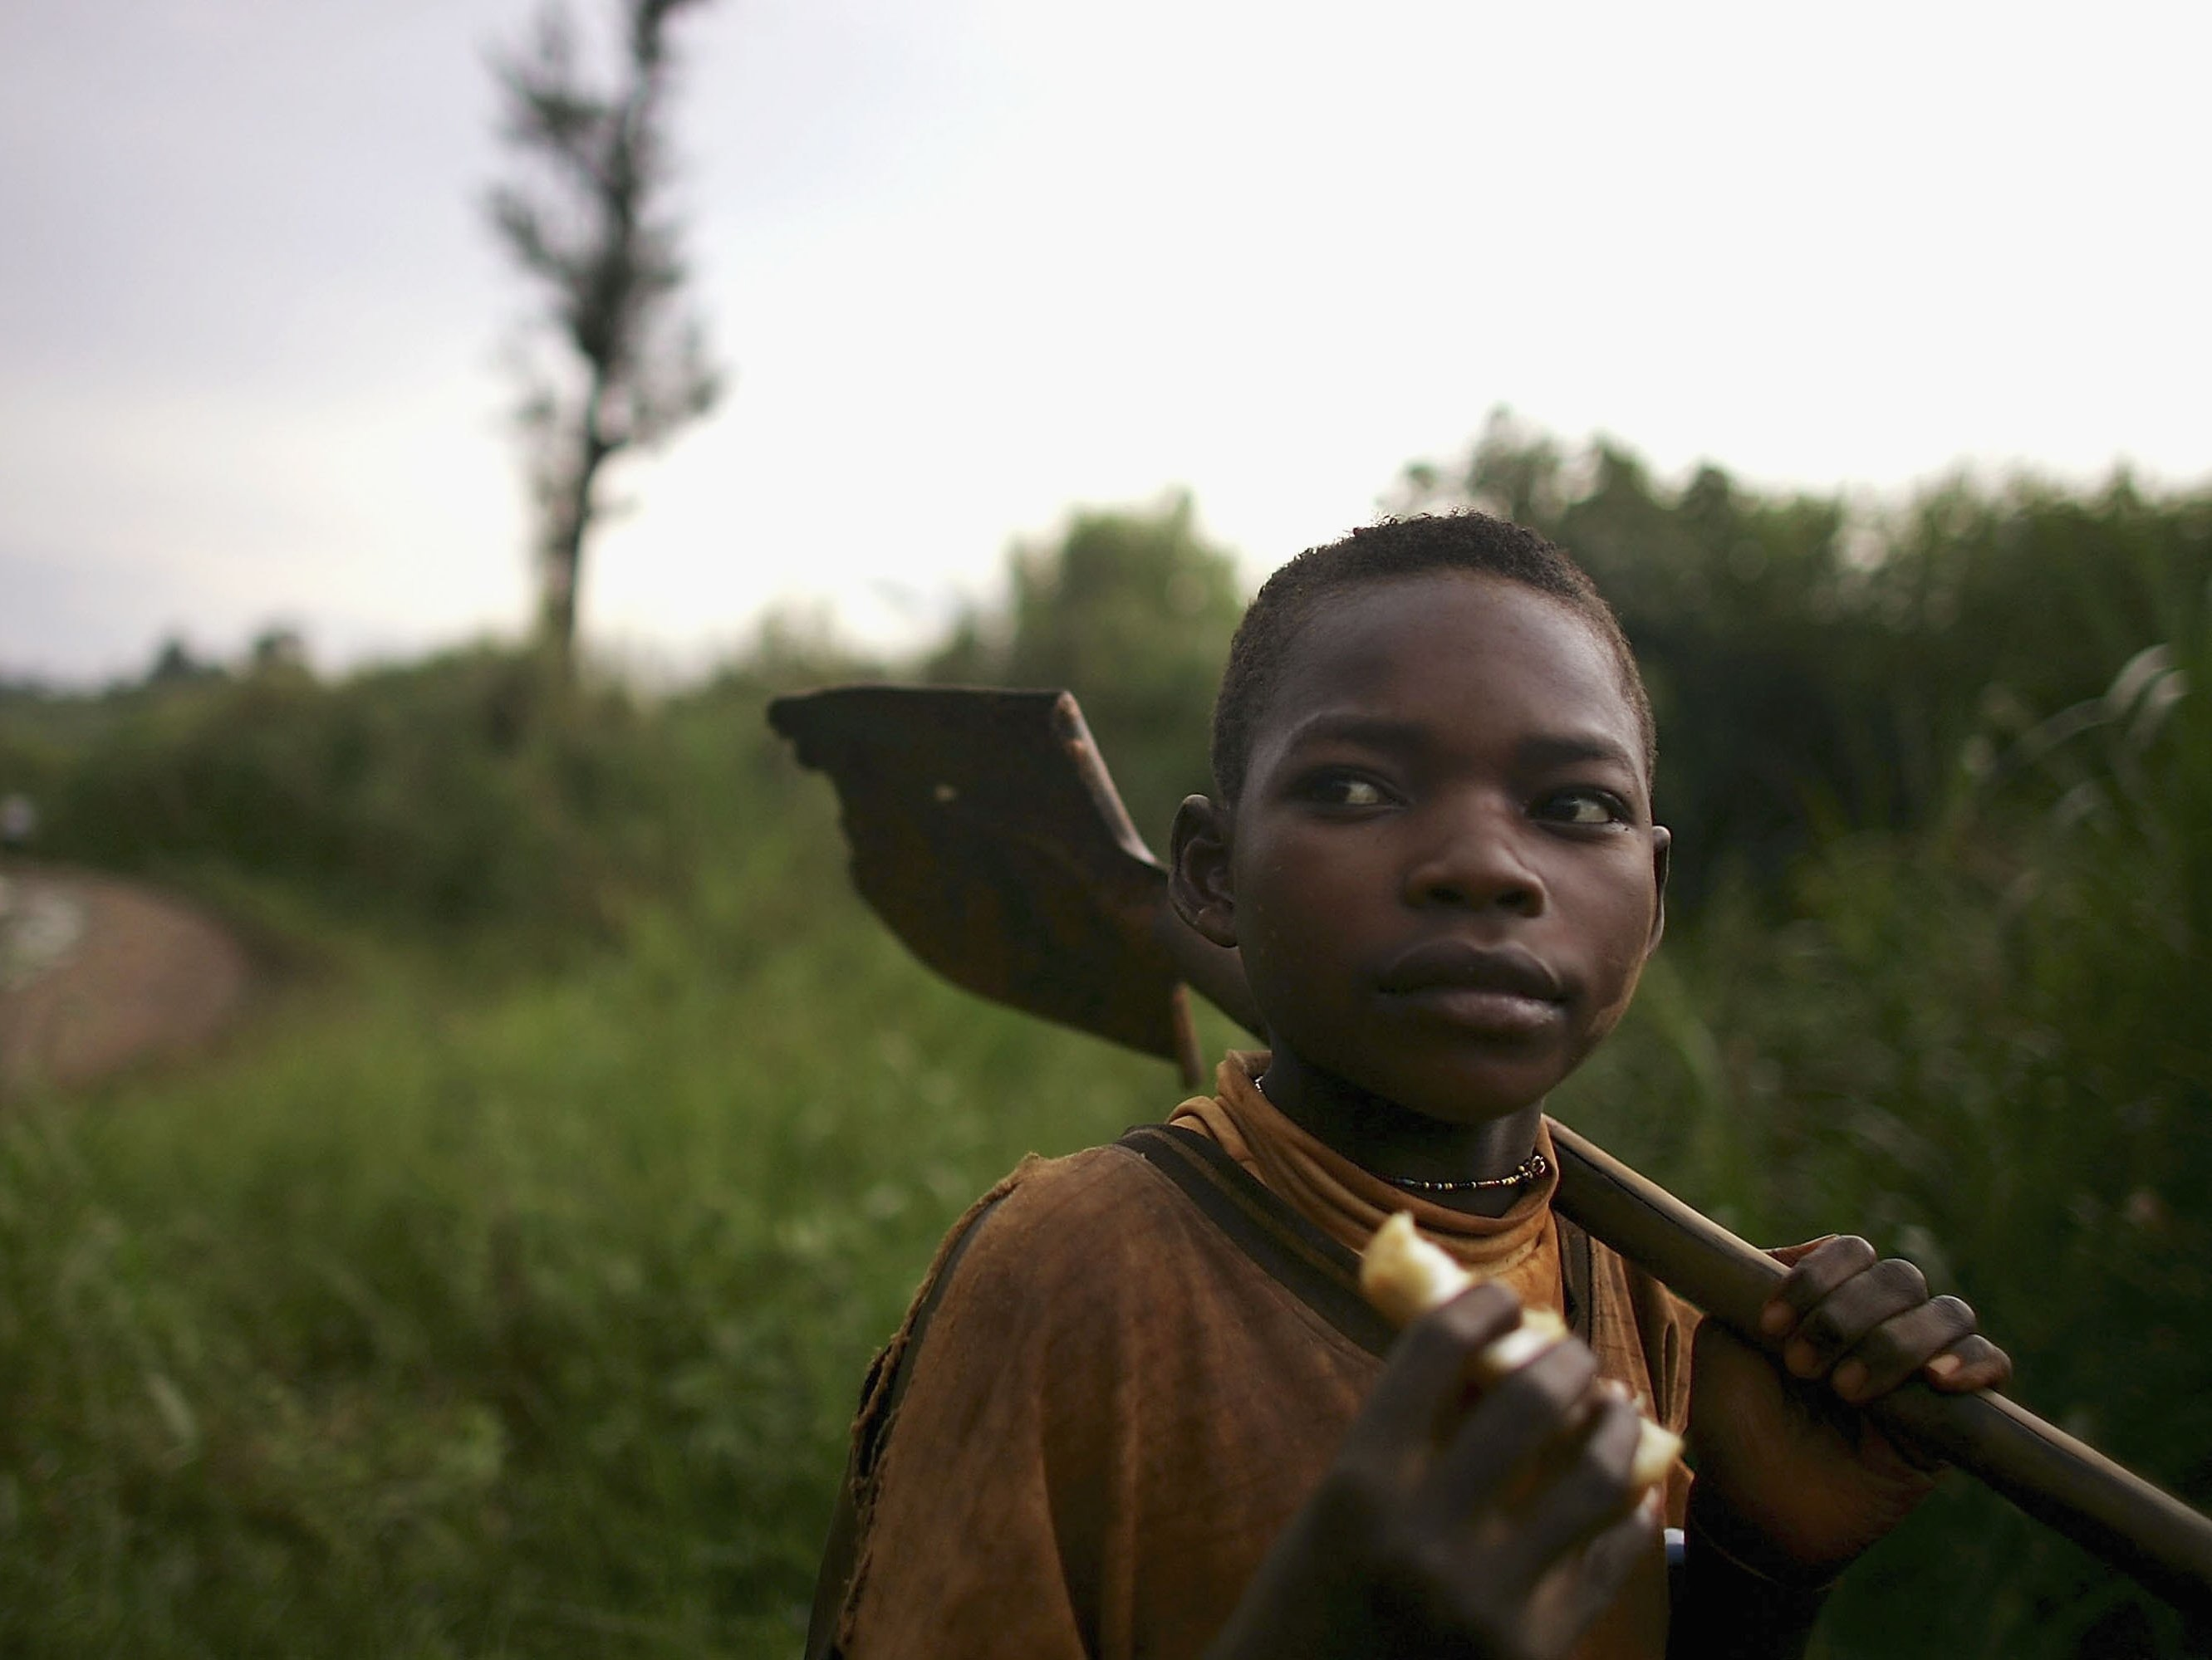 MONGBWALU, CONGO - MARCH 27:   A boy carries a shovel on his way home from the gold mine pits March 27, 2006 in Mongbwalu, Congo.